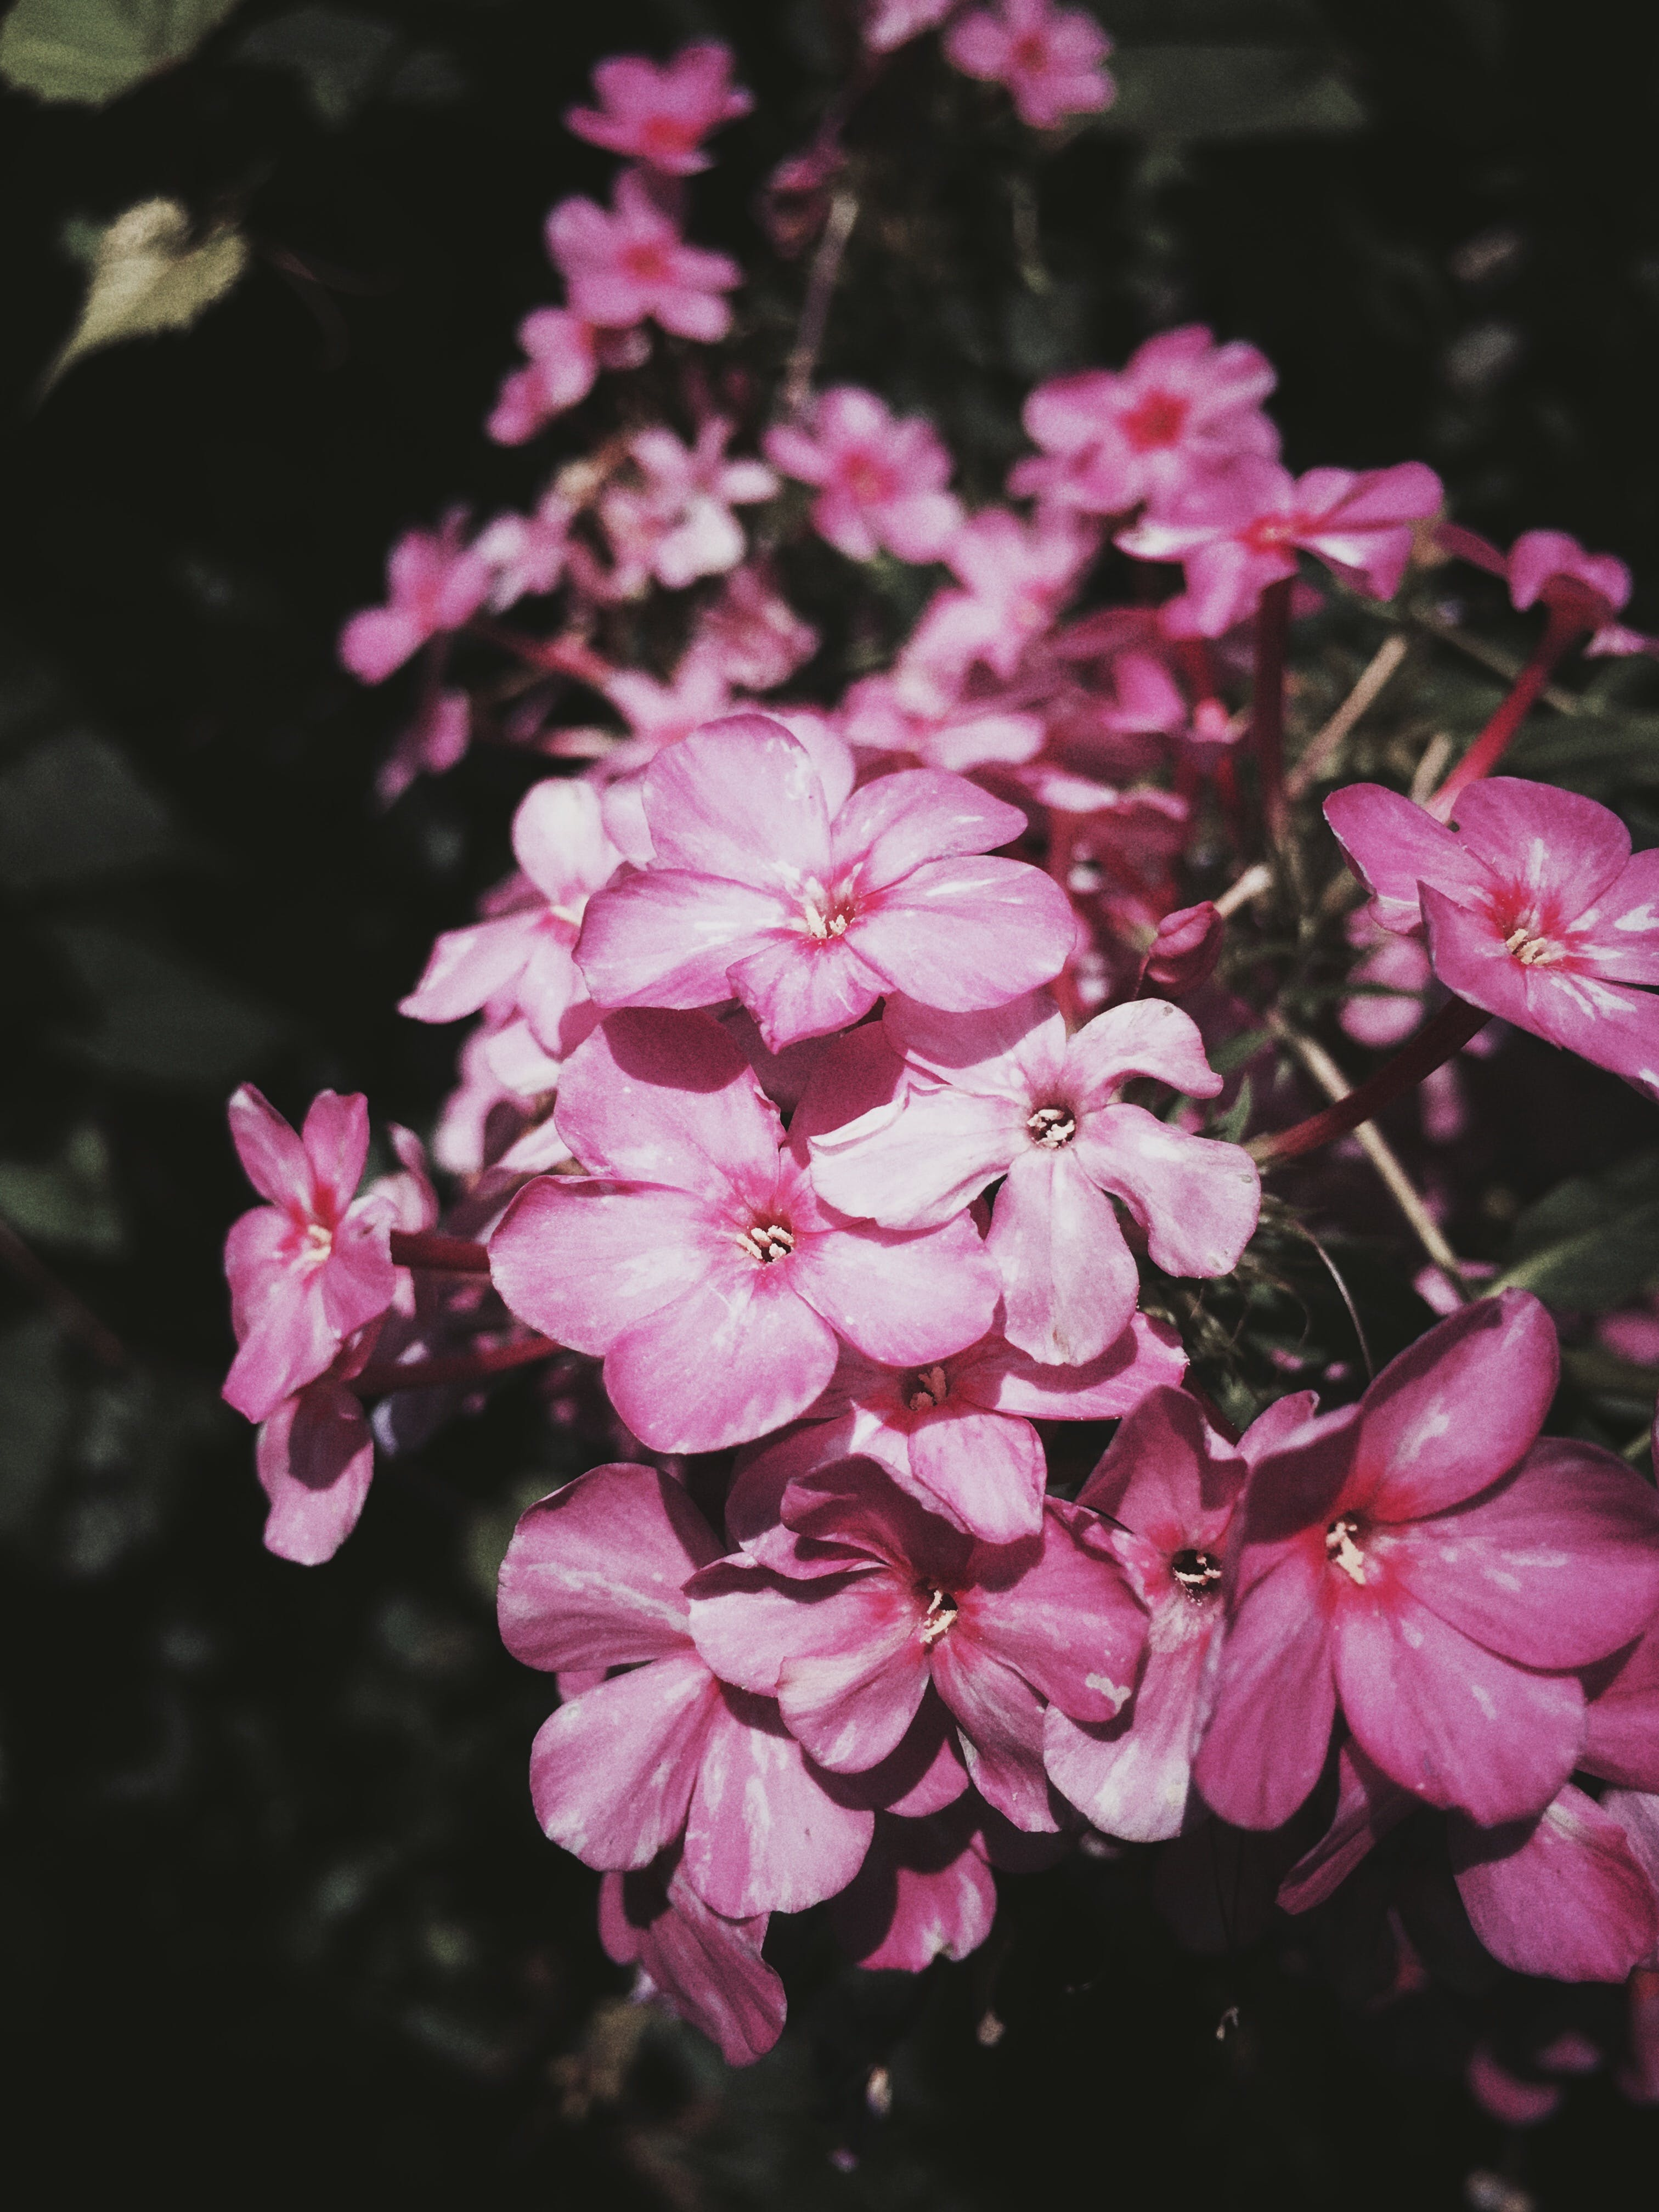 Free stock photo of pink flowers, moody